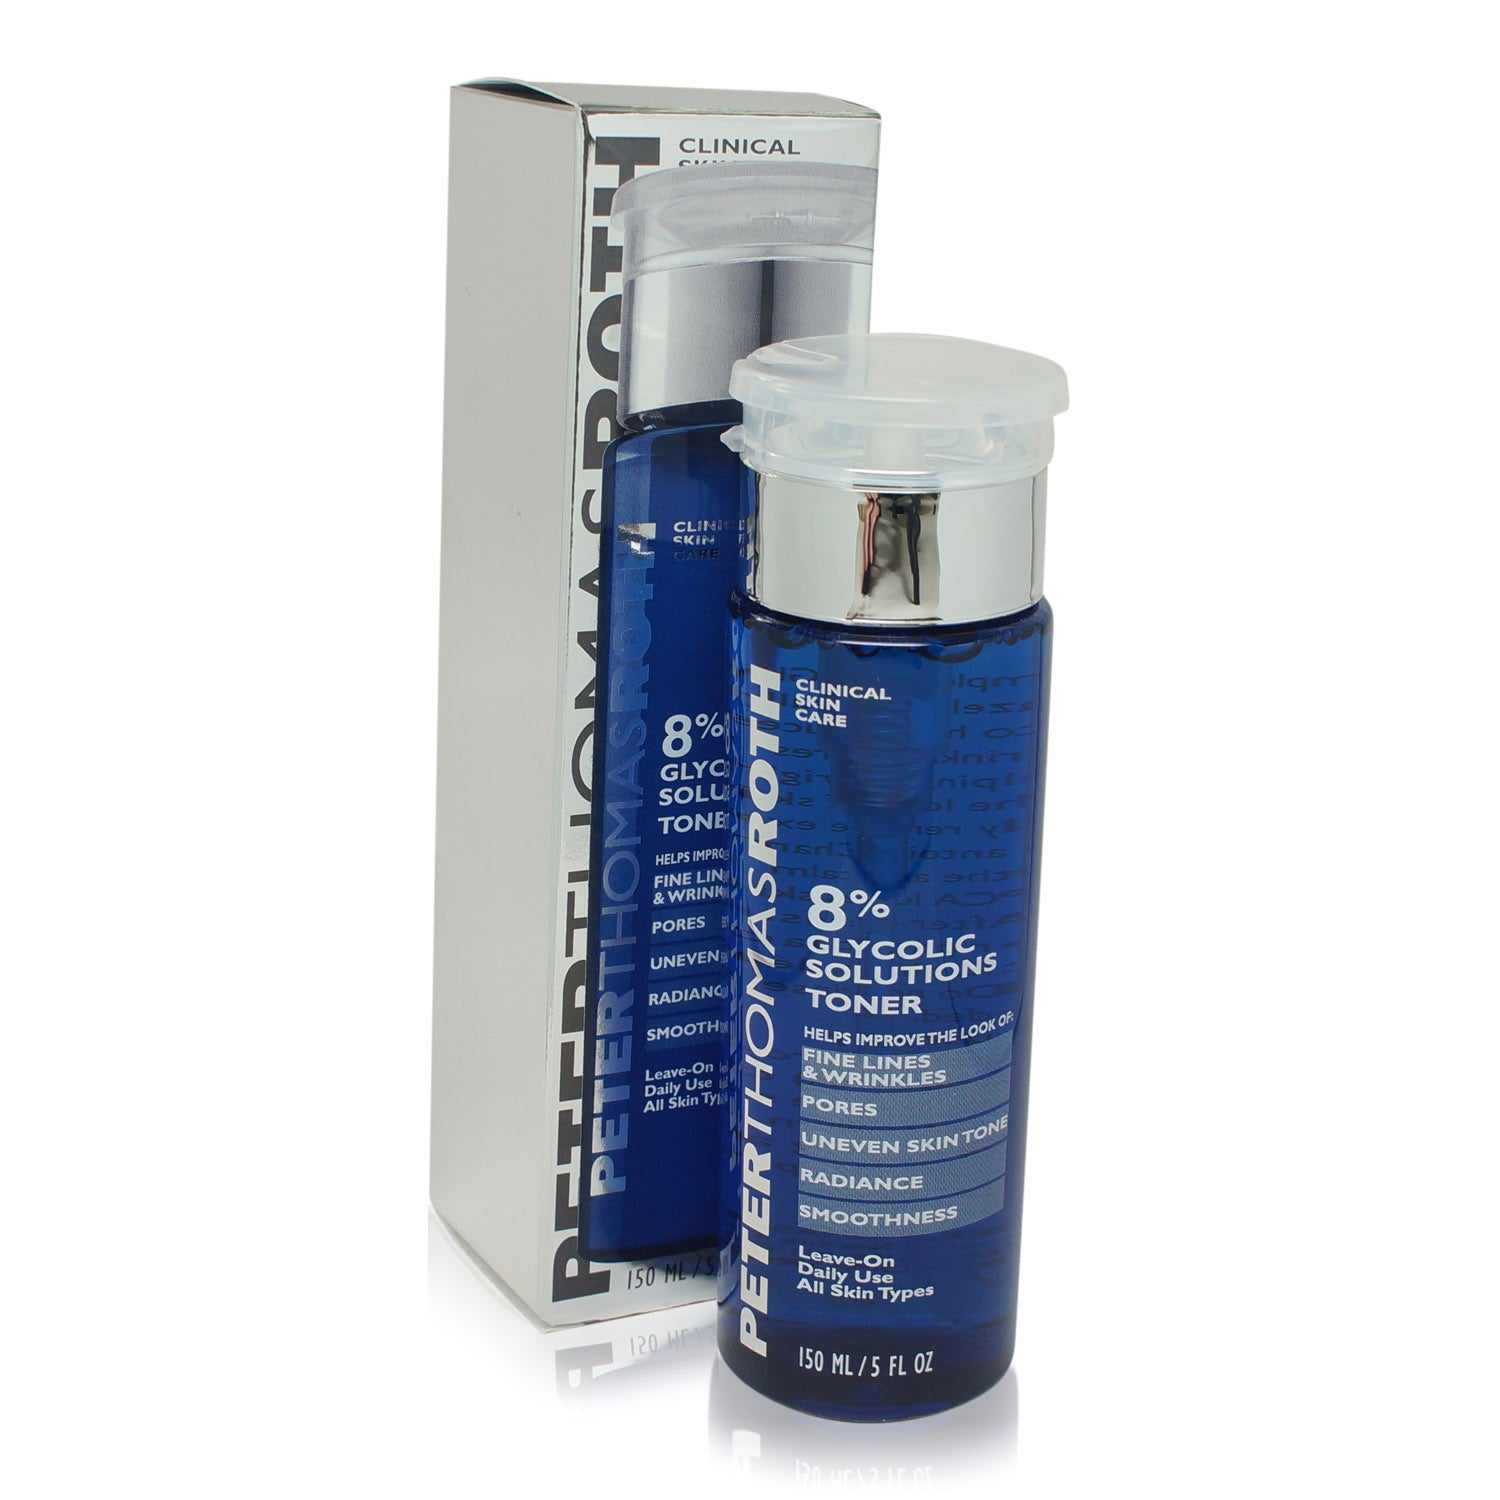 Glycolic Solutions Toner by Peter Thomas Roth #15